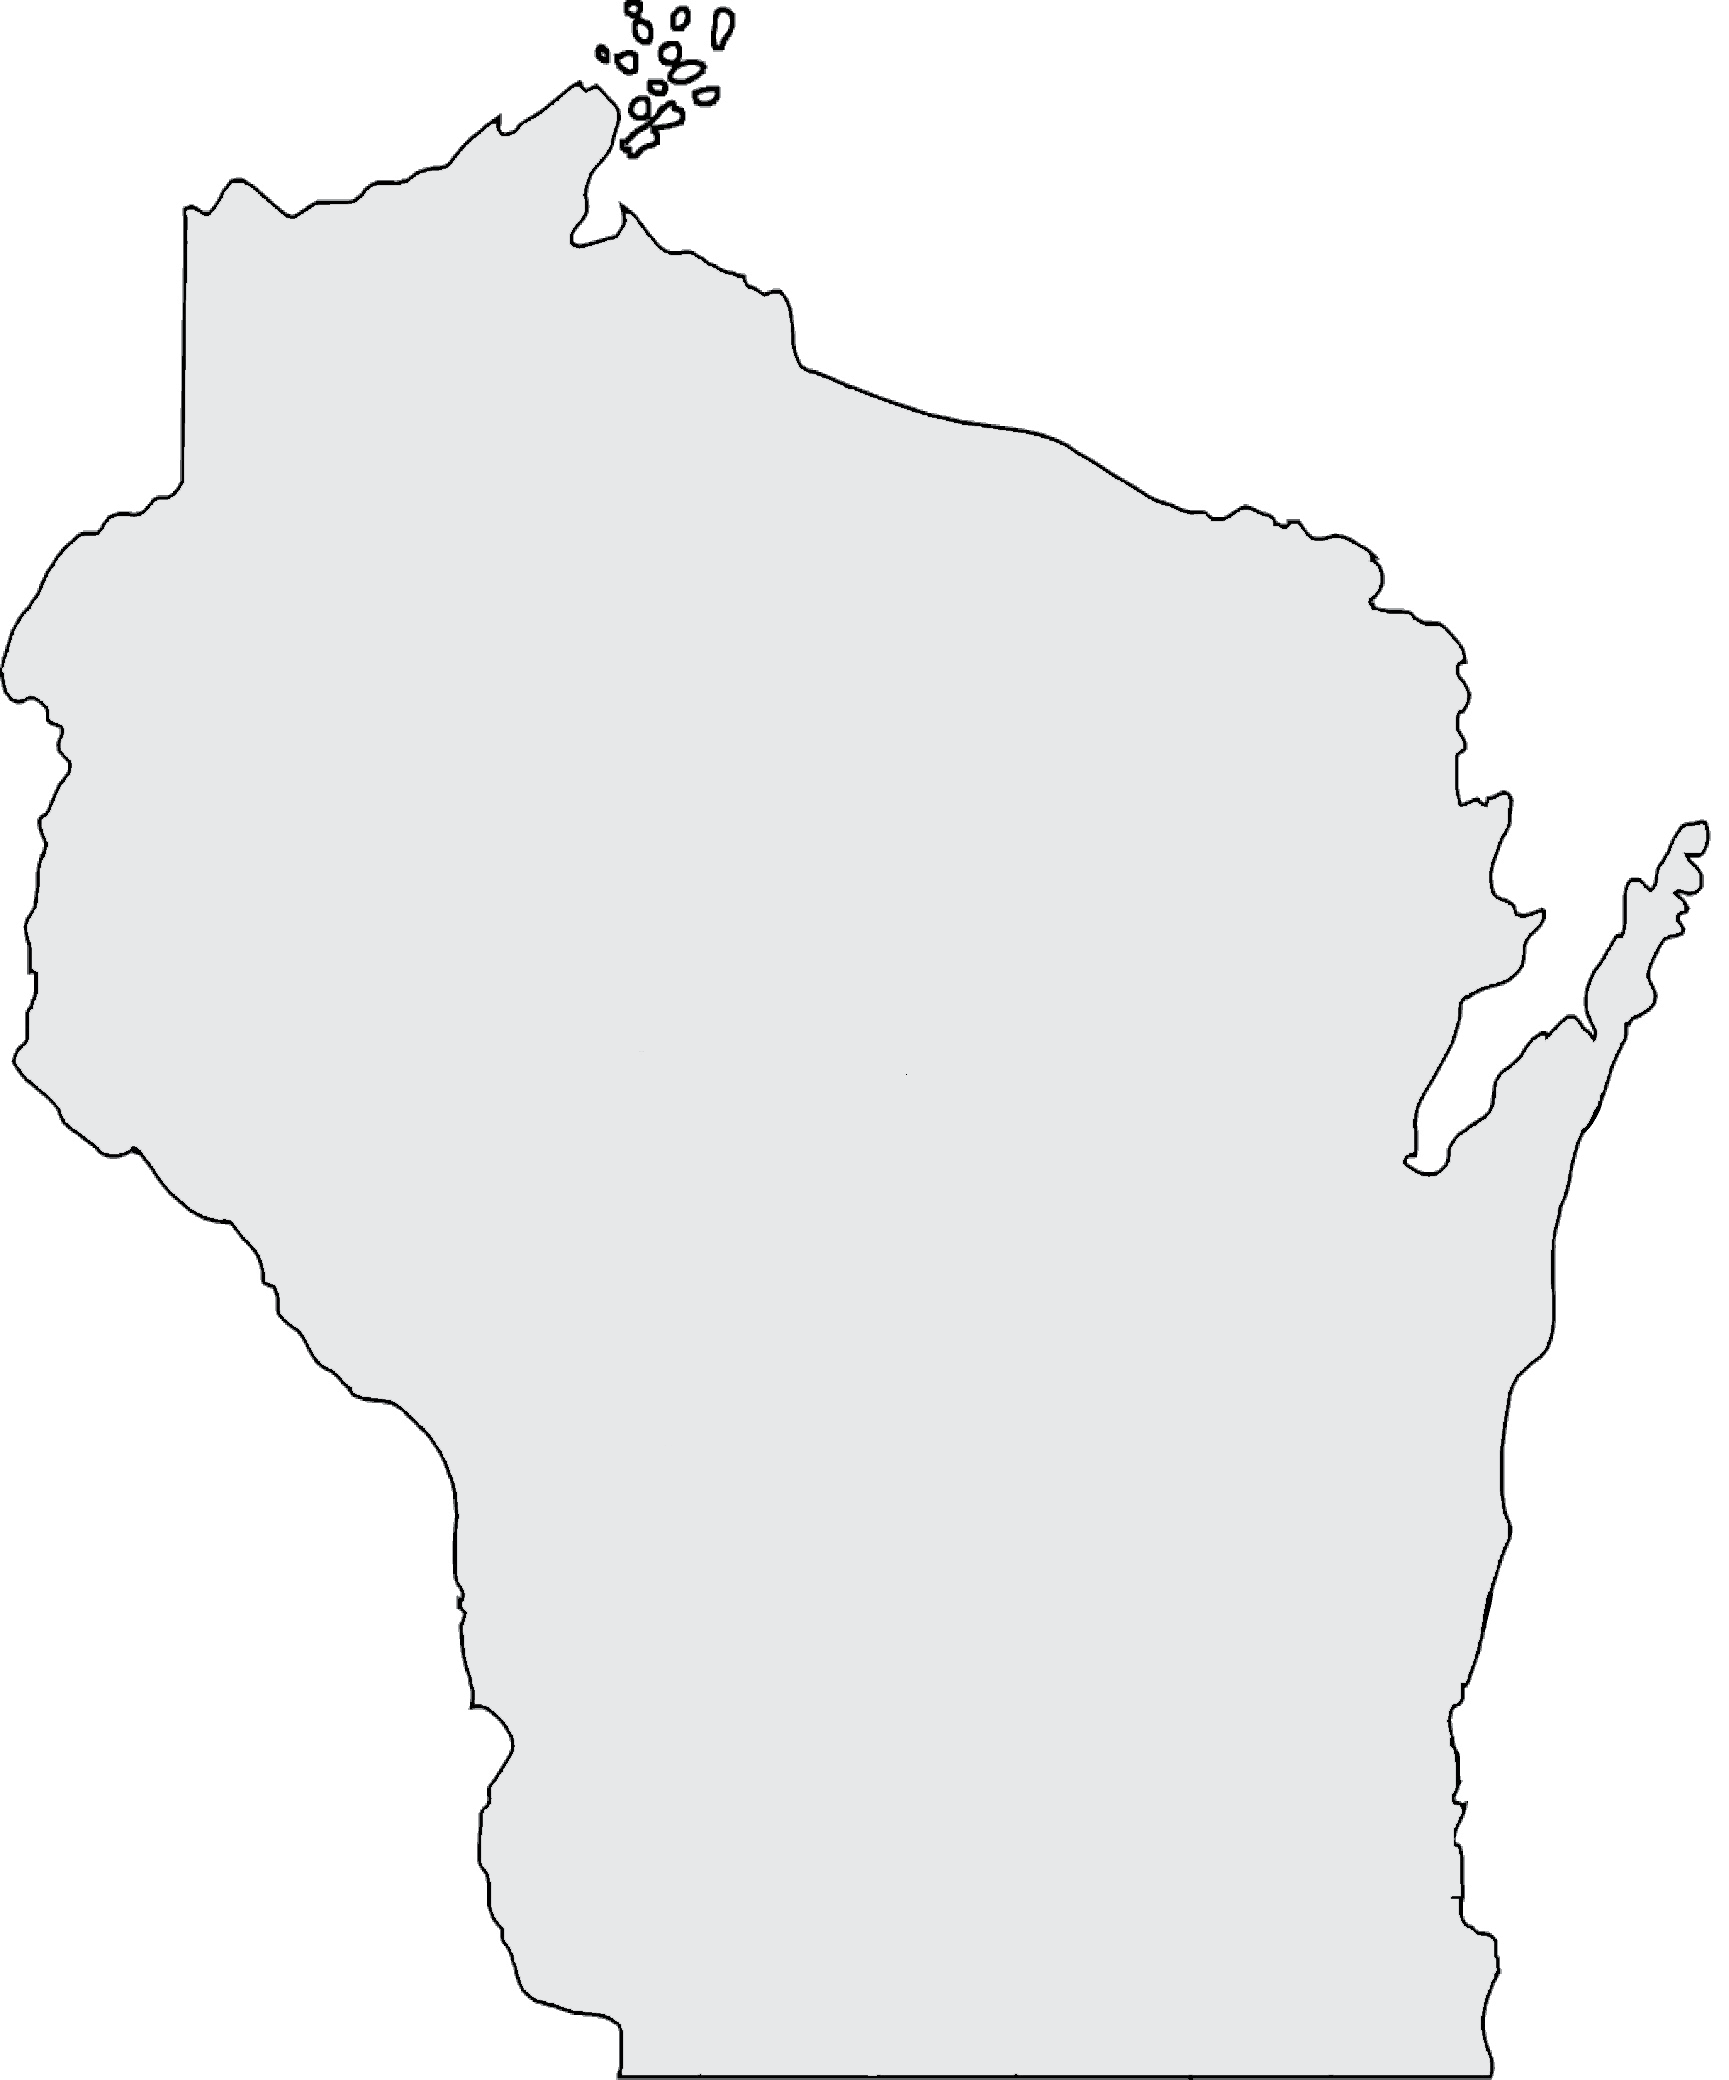 Contact the Department of Employee Trust Funds Internet Site etf.wi.gov Find Wisconsin Retirement System and related benefit program information, as well as several ways to contact ETF by e-mail.